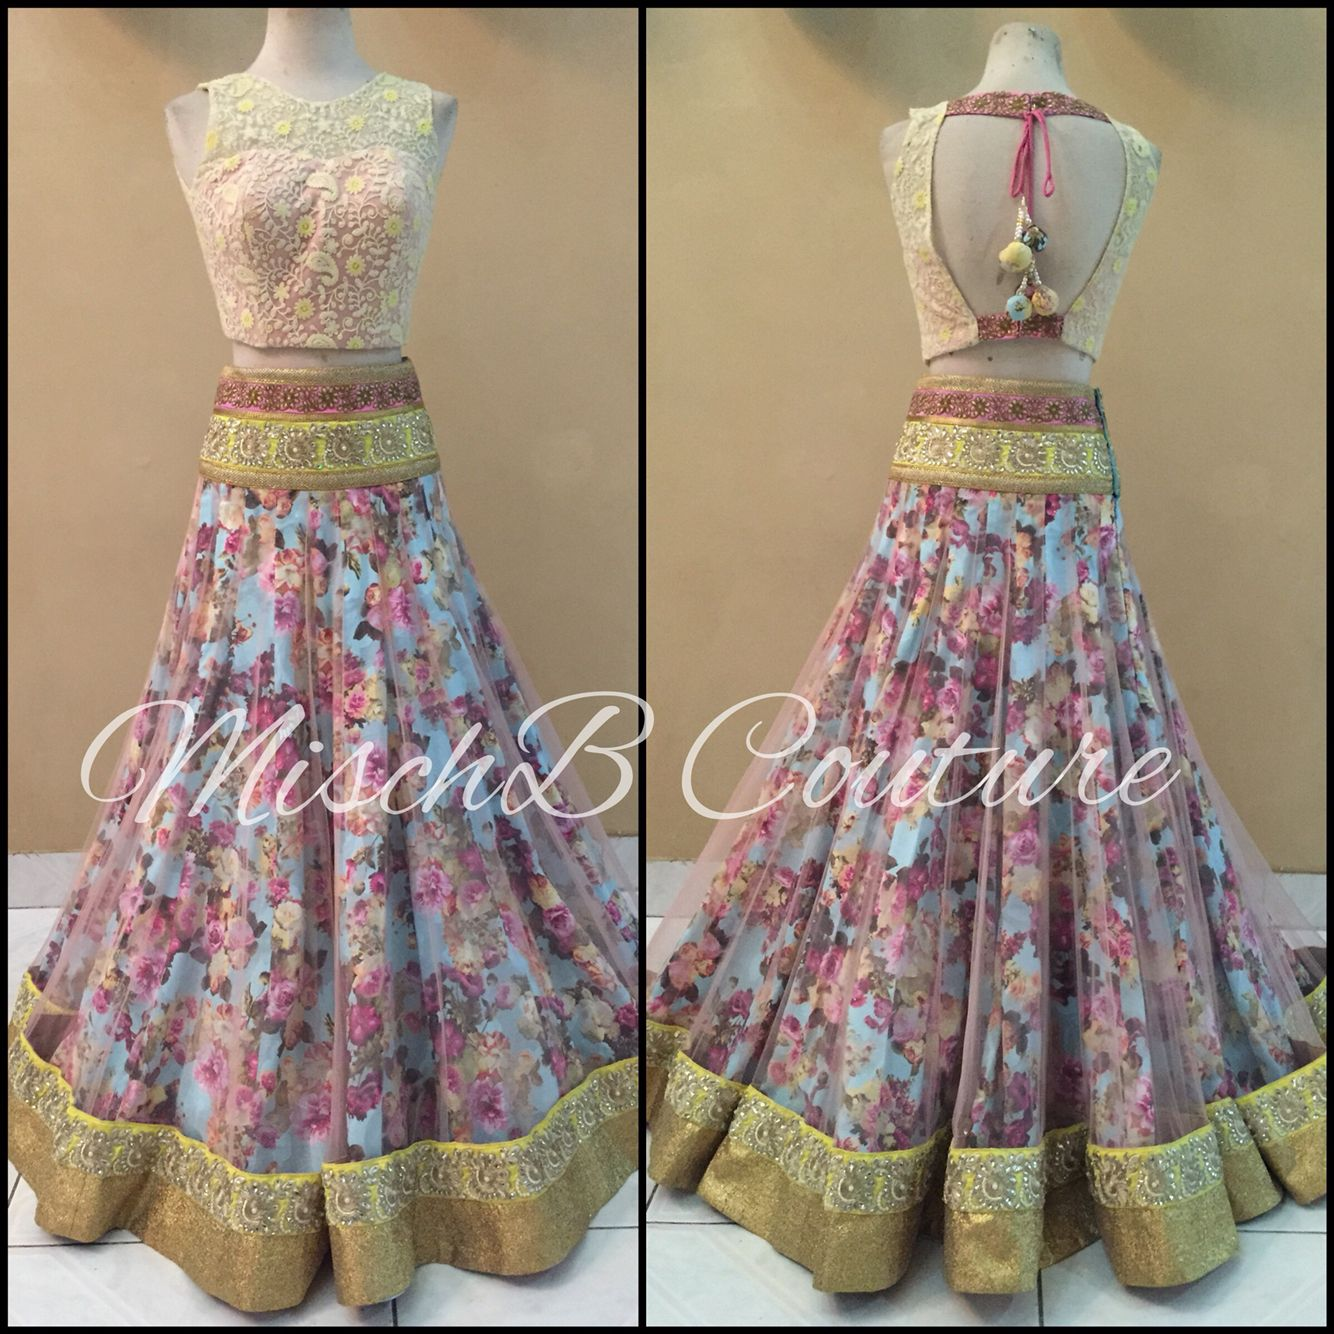 817b8283df Ka-Bloom, floral print lehenga by MischB Couture | MischB Couture ...